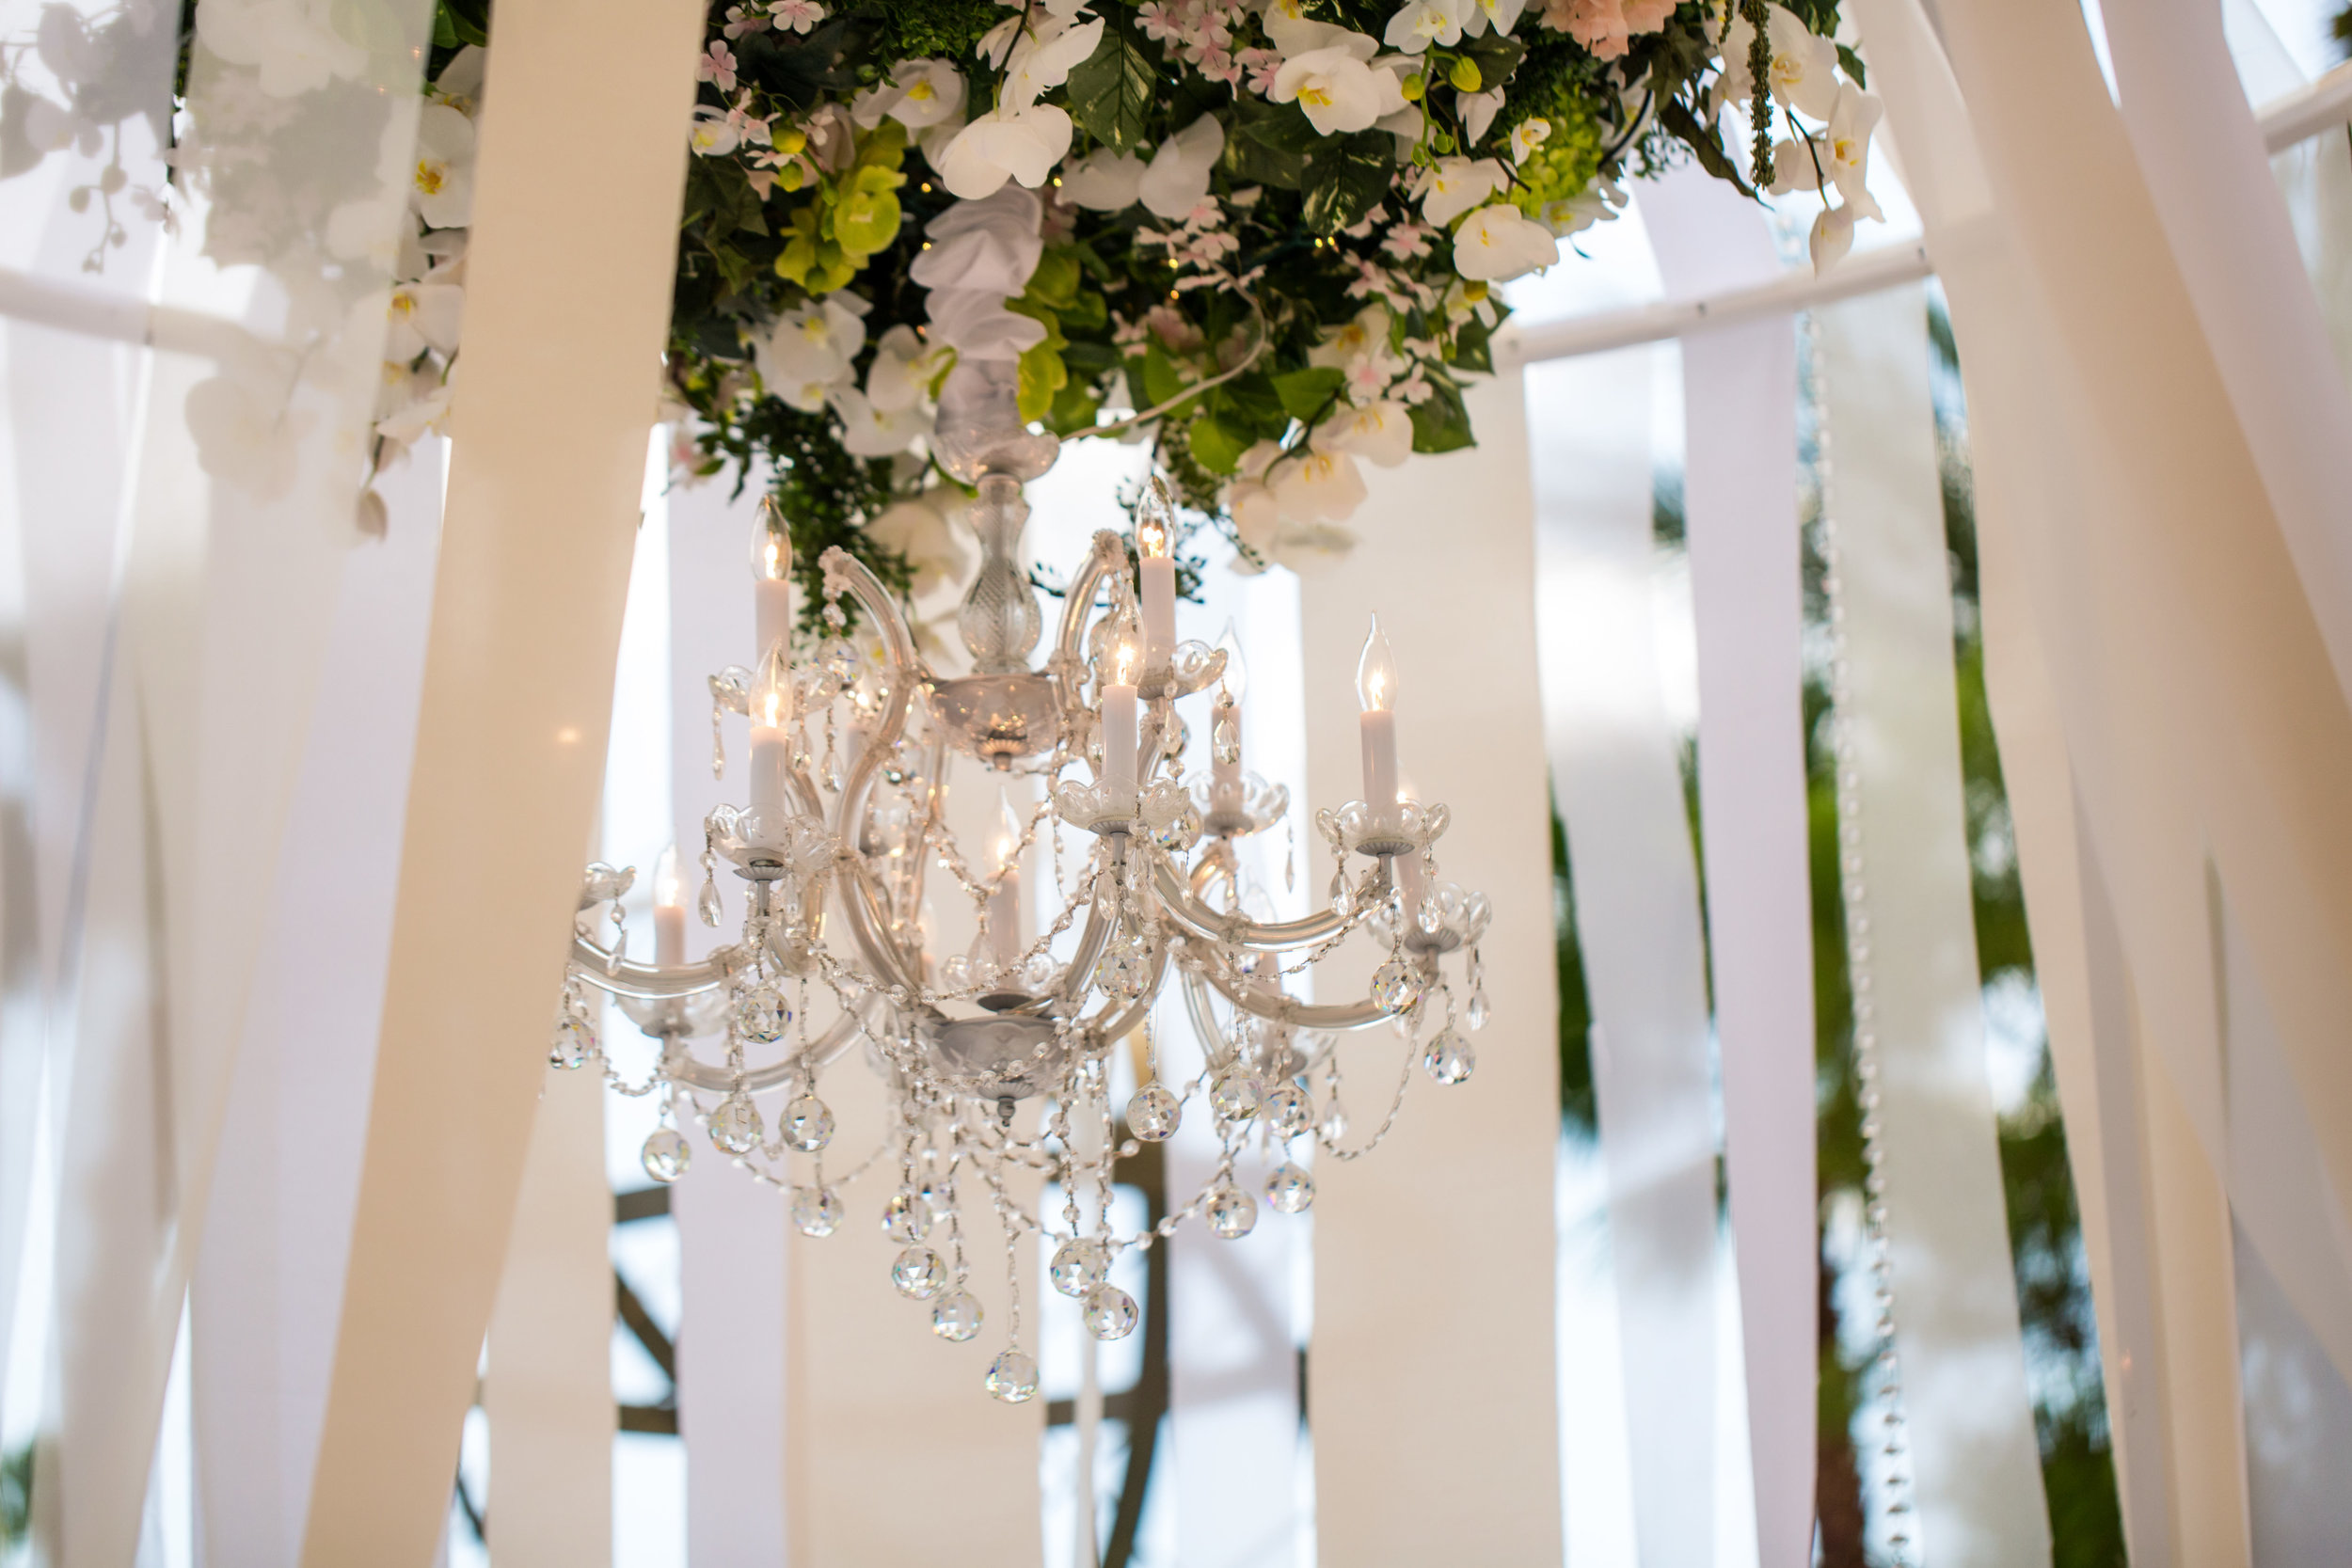 Floral chandelier.Wedding Planning by  Andrea Eppolito Events  · Photography by  Shandro Photo   · Wedding Venue  Four Seasons Las Vegas  · Floral and Decor by  Destination by Design  · Chandeliers and Lighting by  LED Unplugged